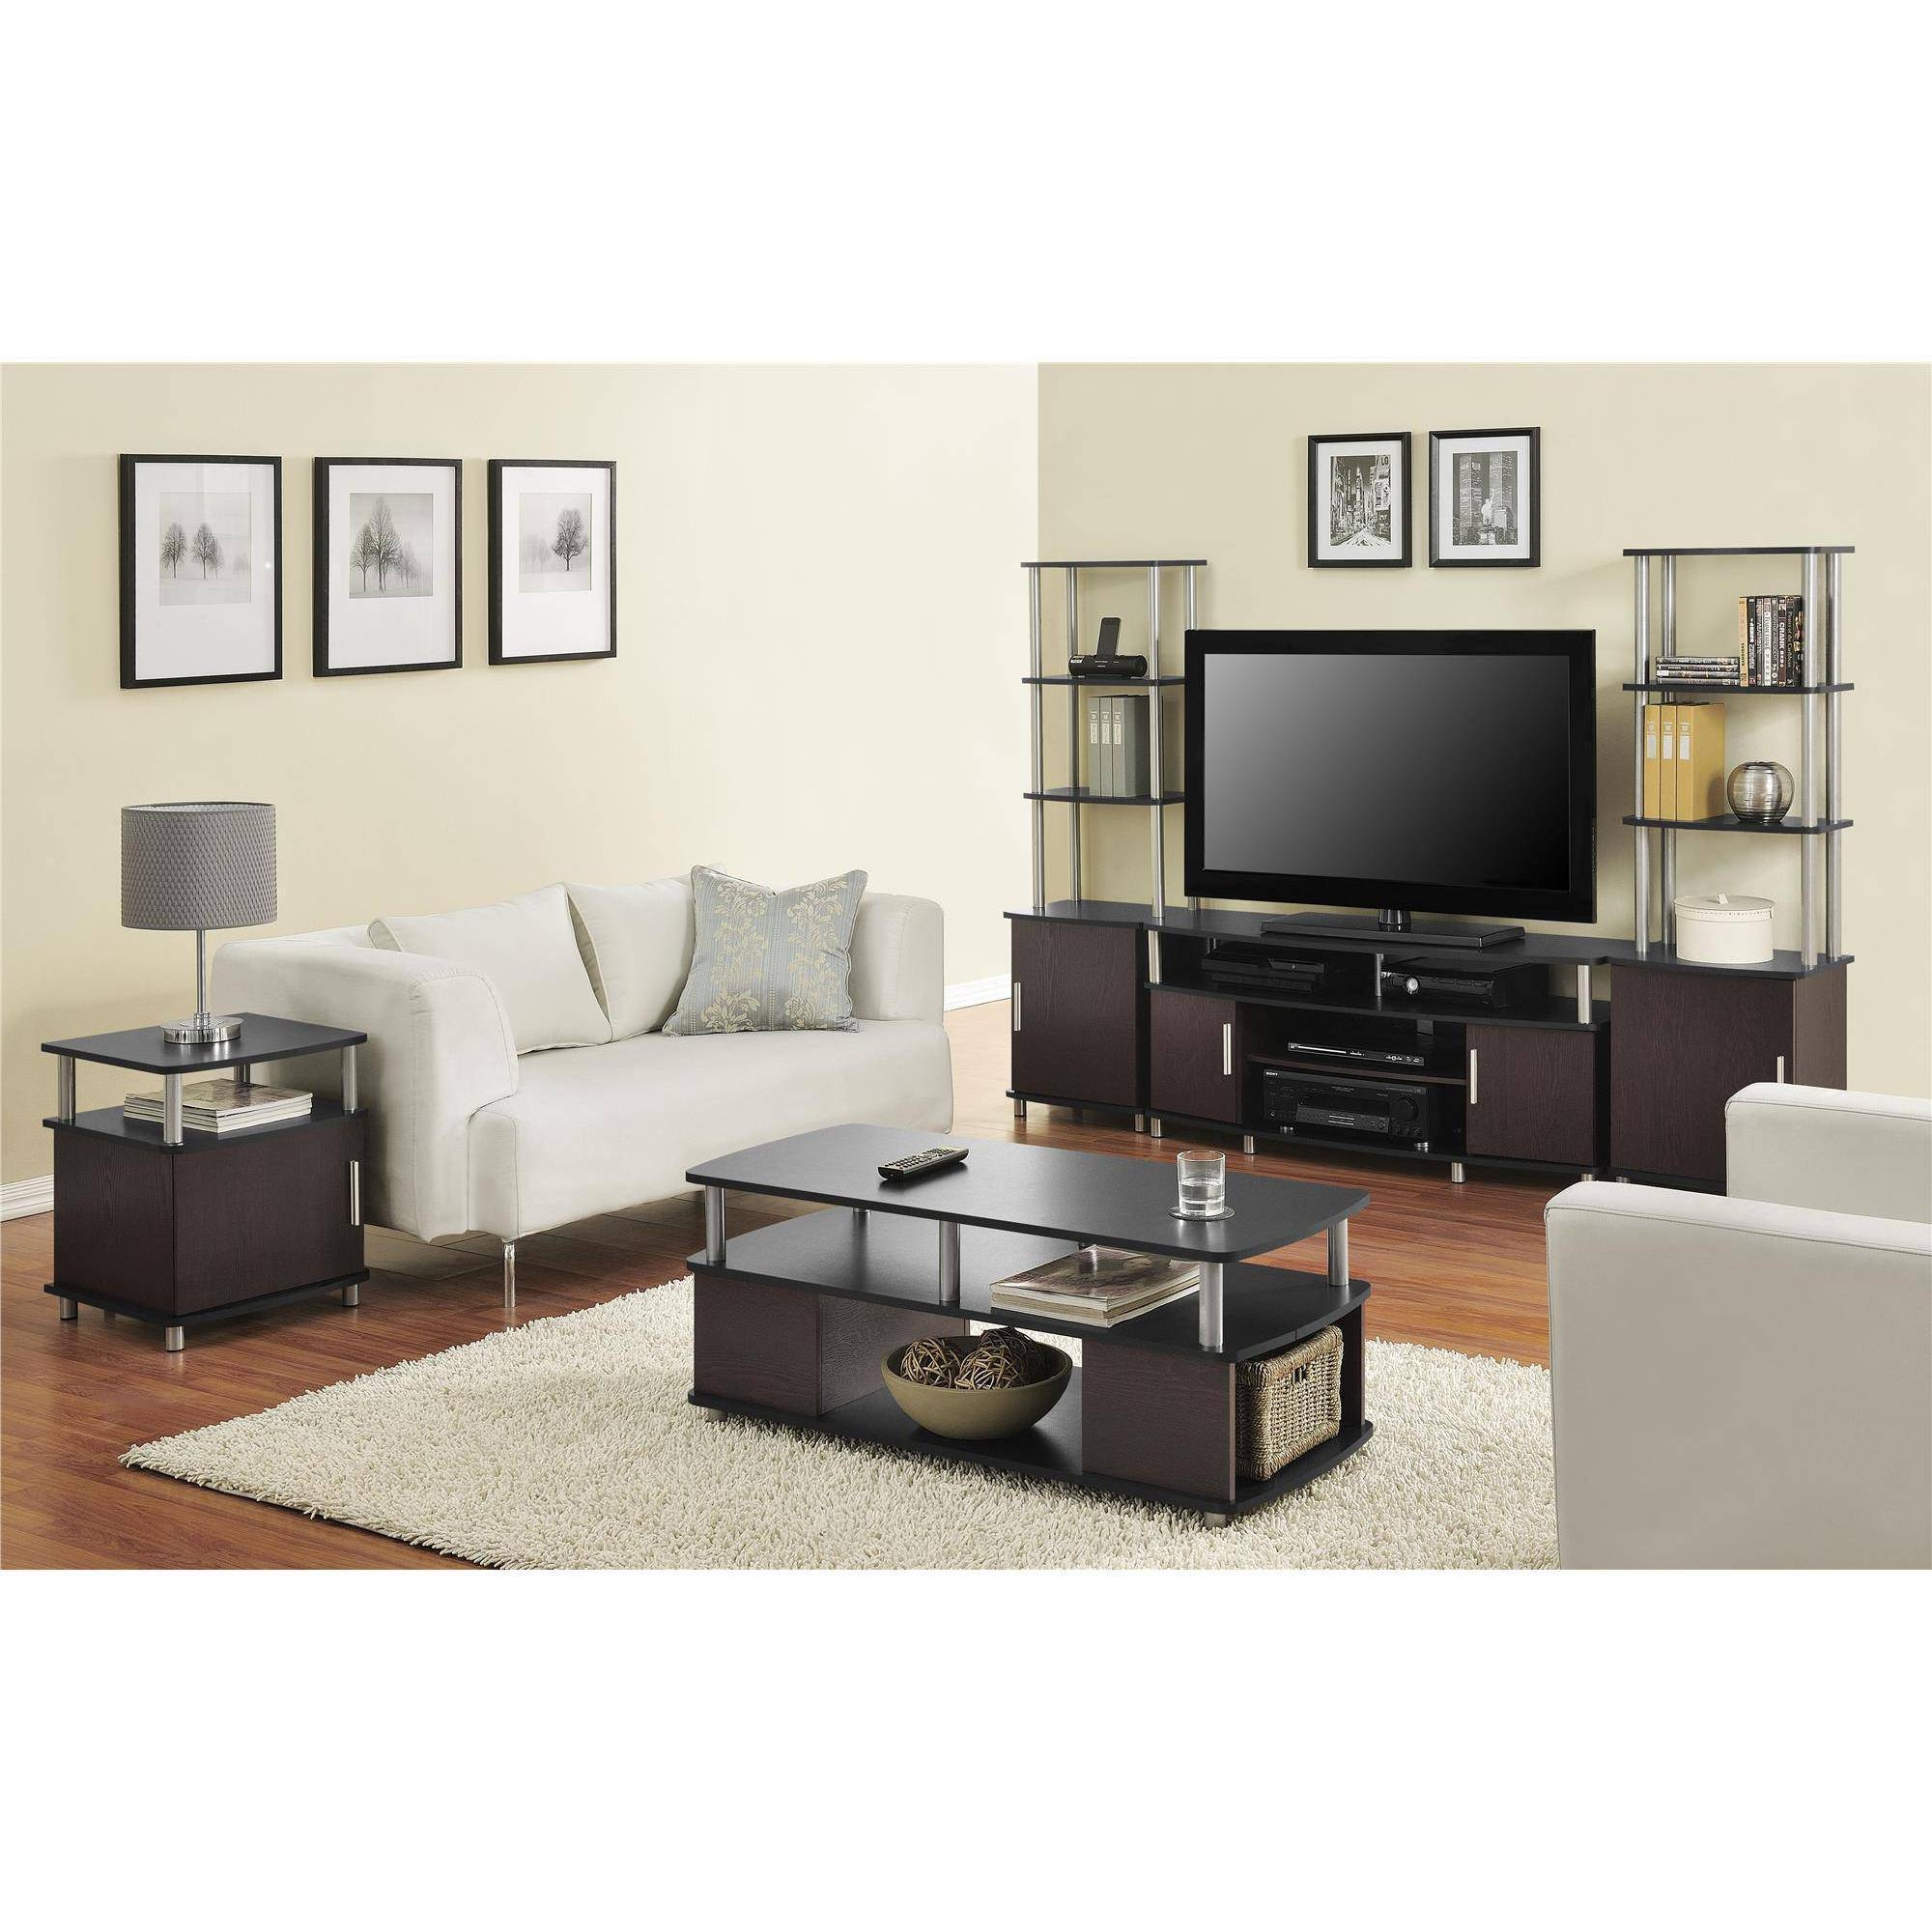 30 Best Collection of Coffee Table and Tv Unit Sets